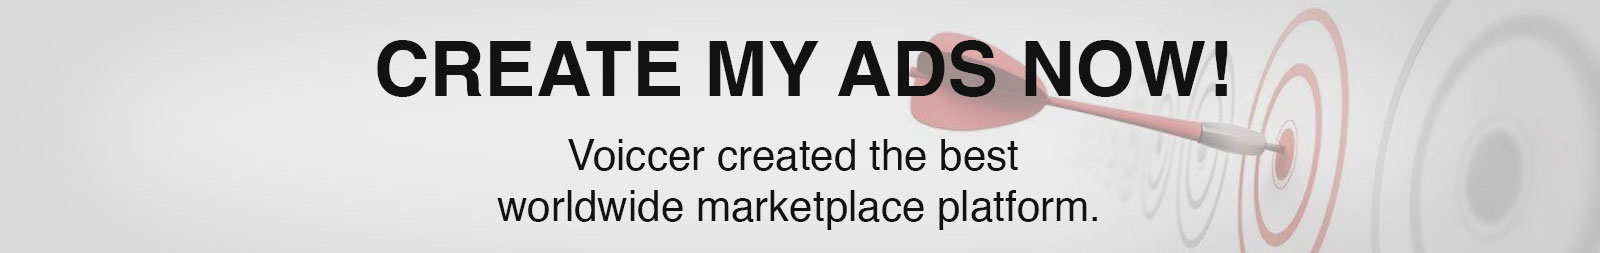 create new ads now